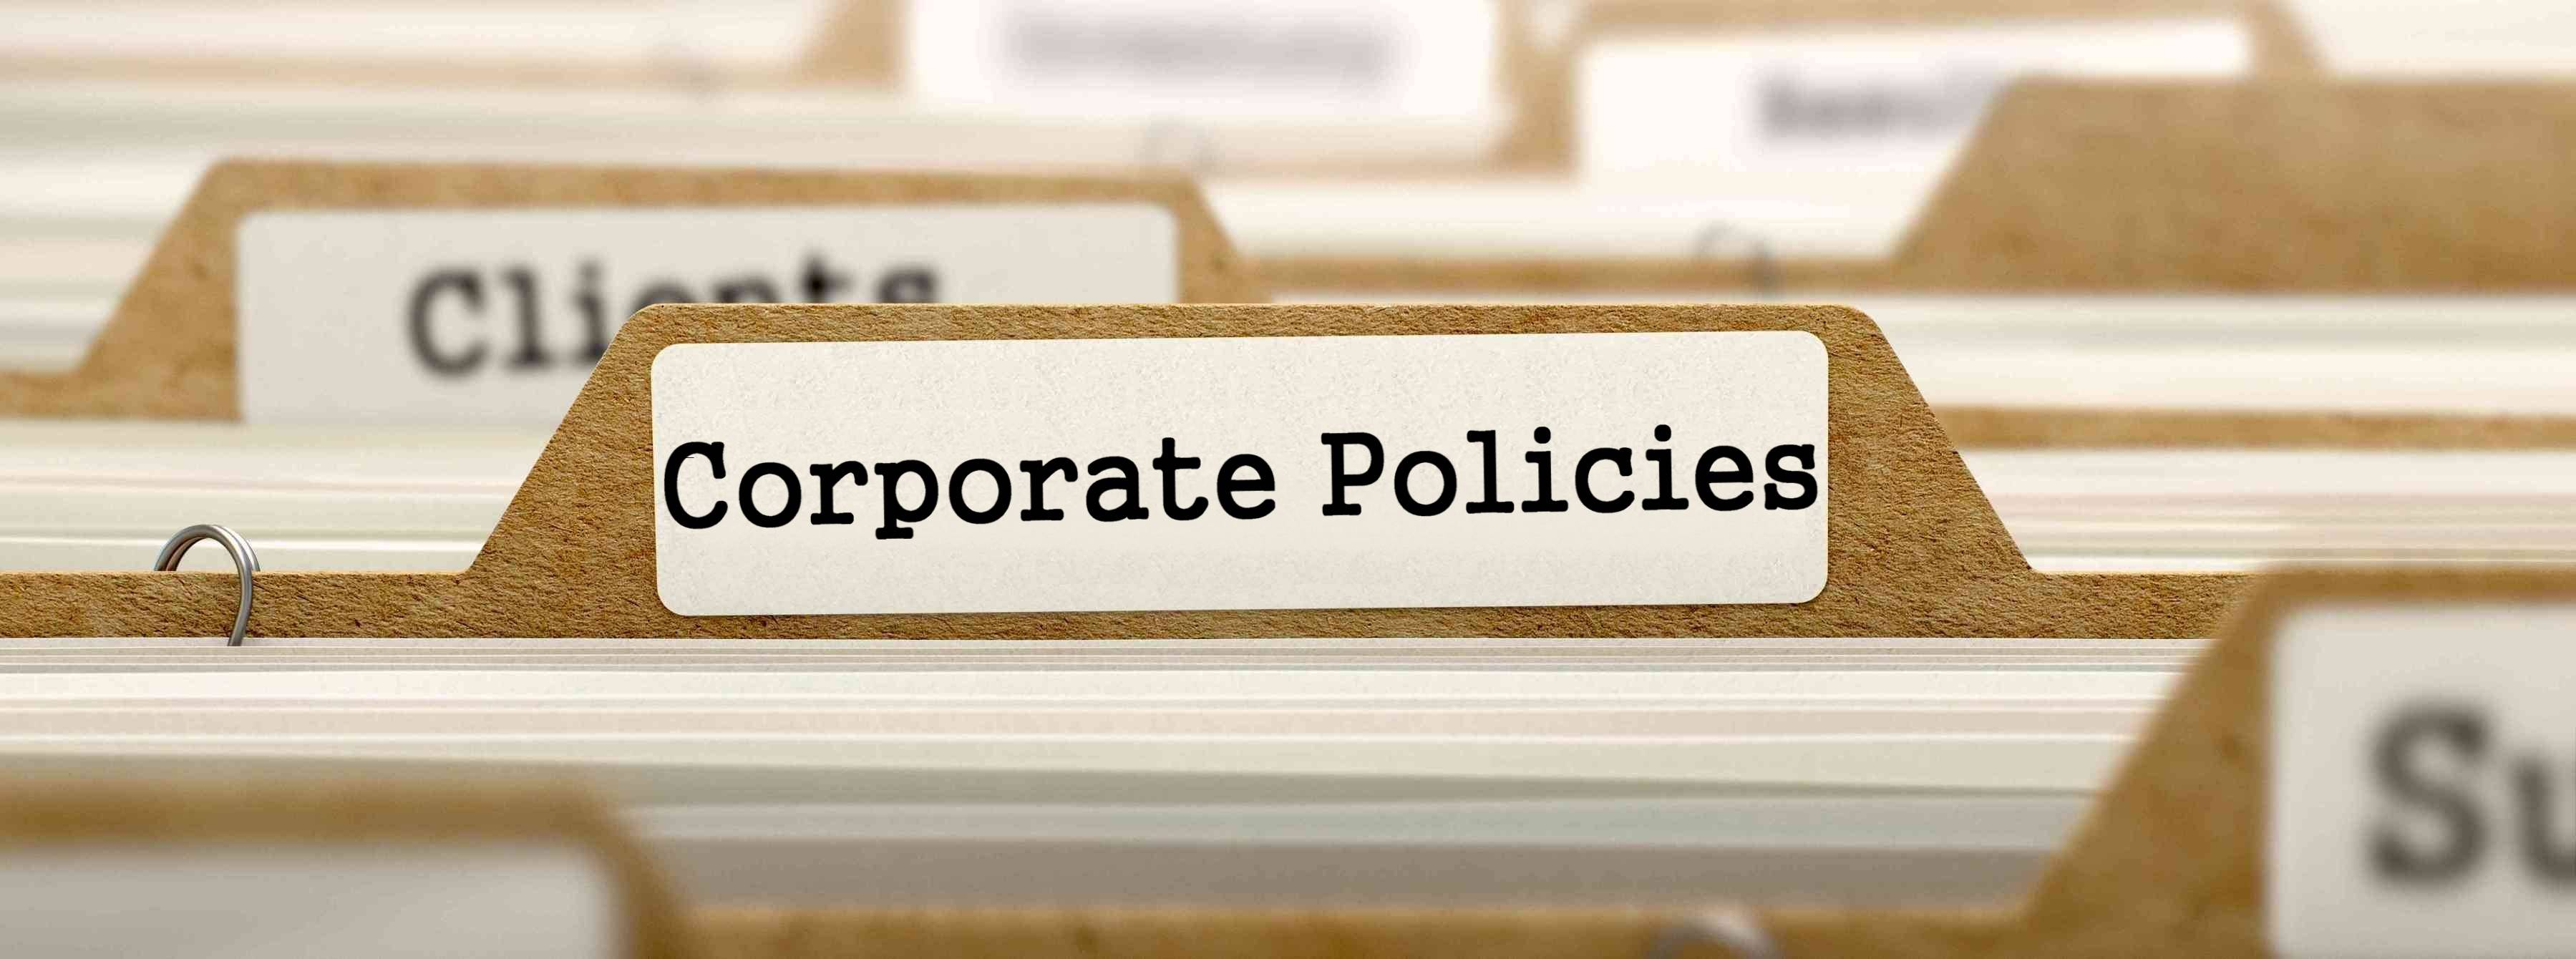 Corporate Policies